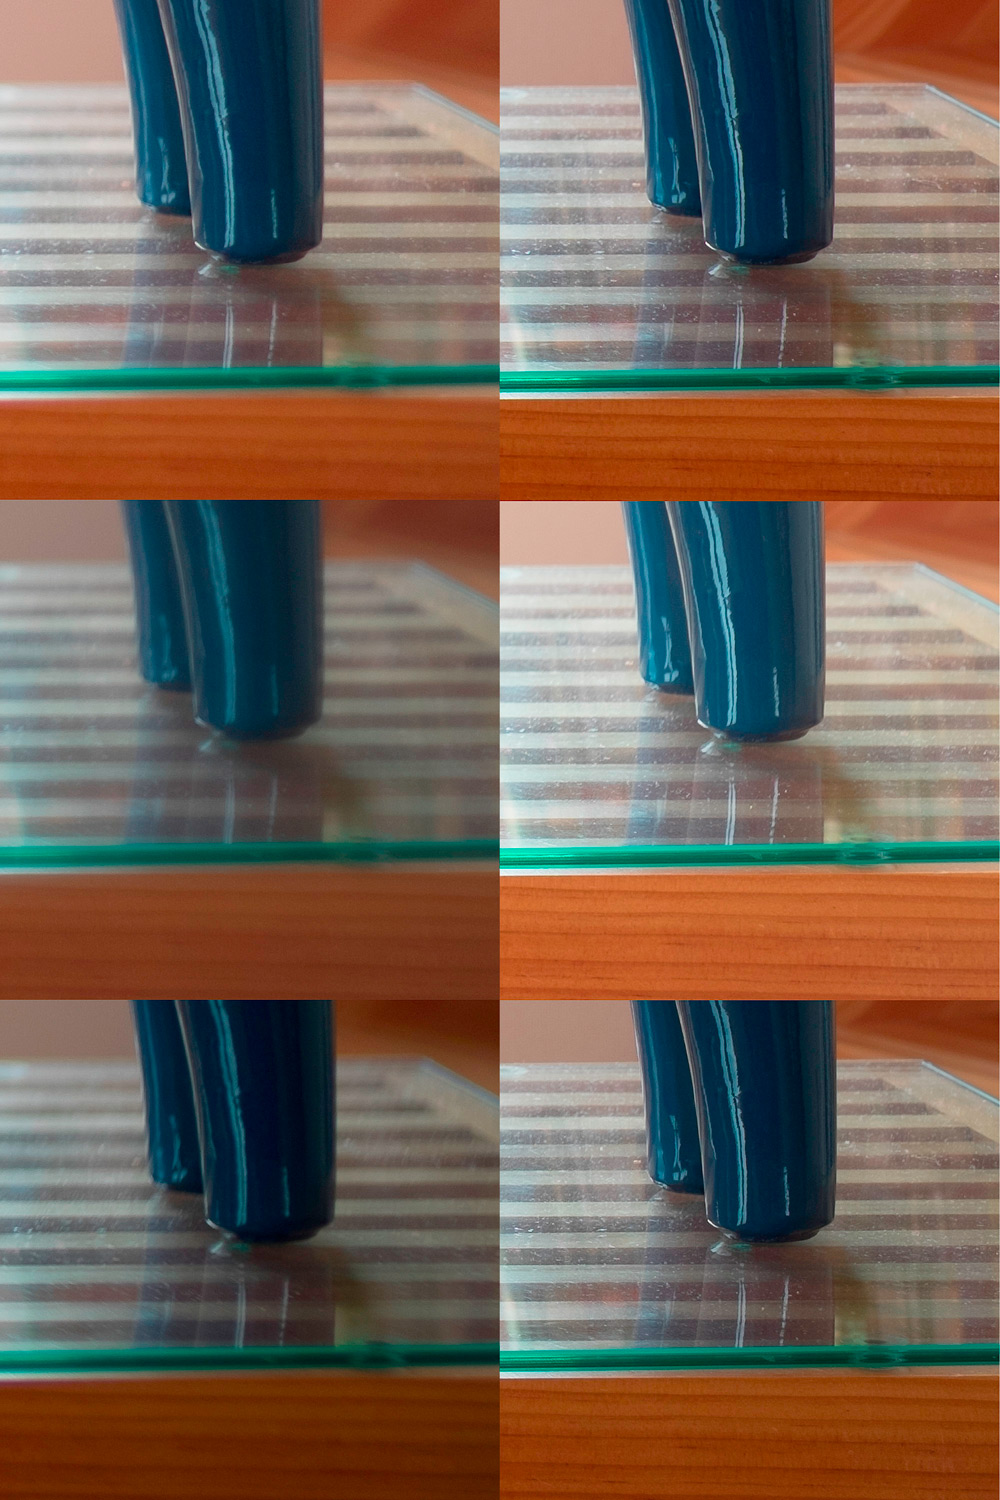 Image right: from top to bottom andleft to right: Fujifilm 35 @f/1,4 -> f/8; Canon 35 @f/1,5  -> f/8; Leica 35 @f/1,4 -> f/8